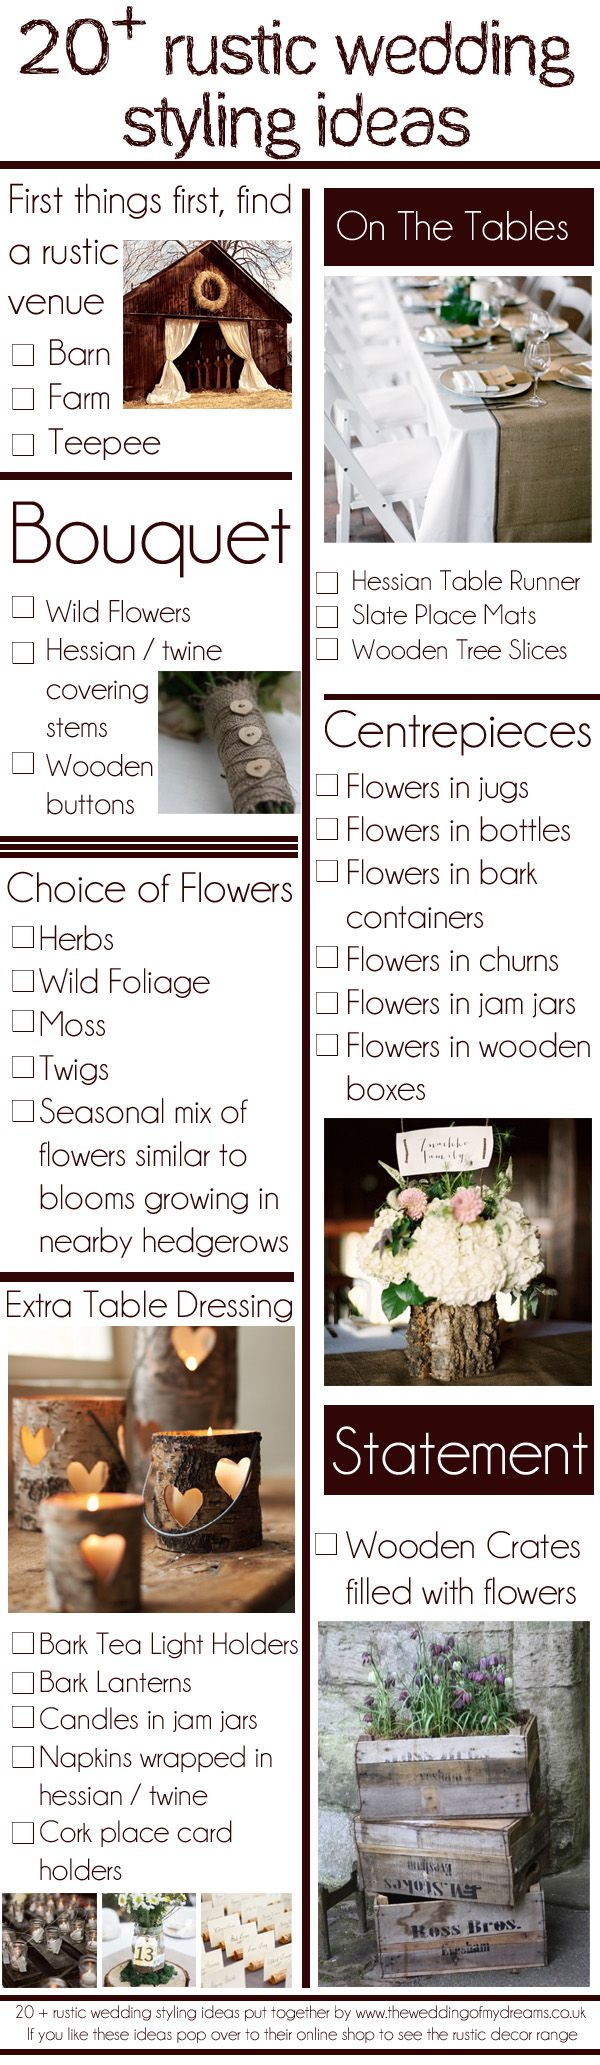 20 Rustic Wedding Styling Ideas #wedding #rustic #decoration www.theweddingofm...